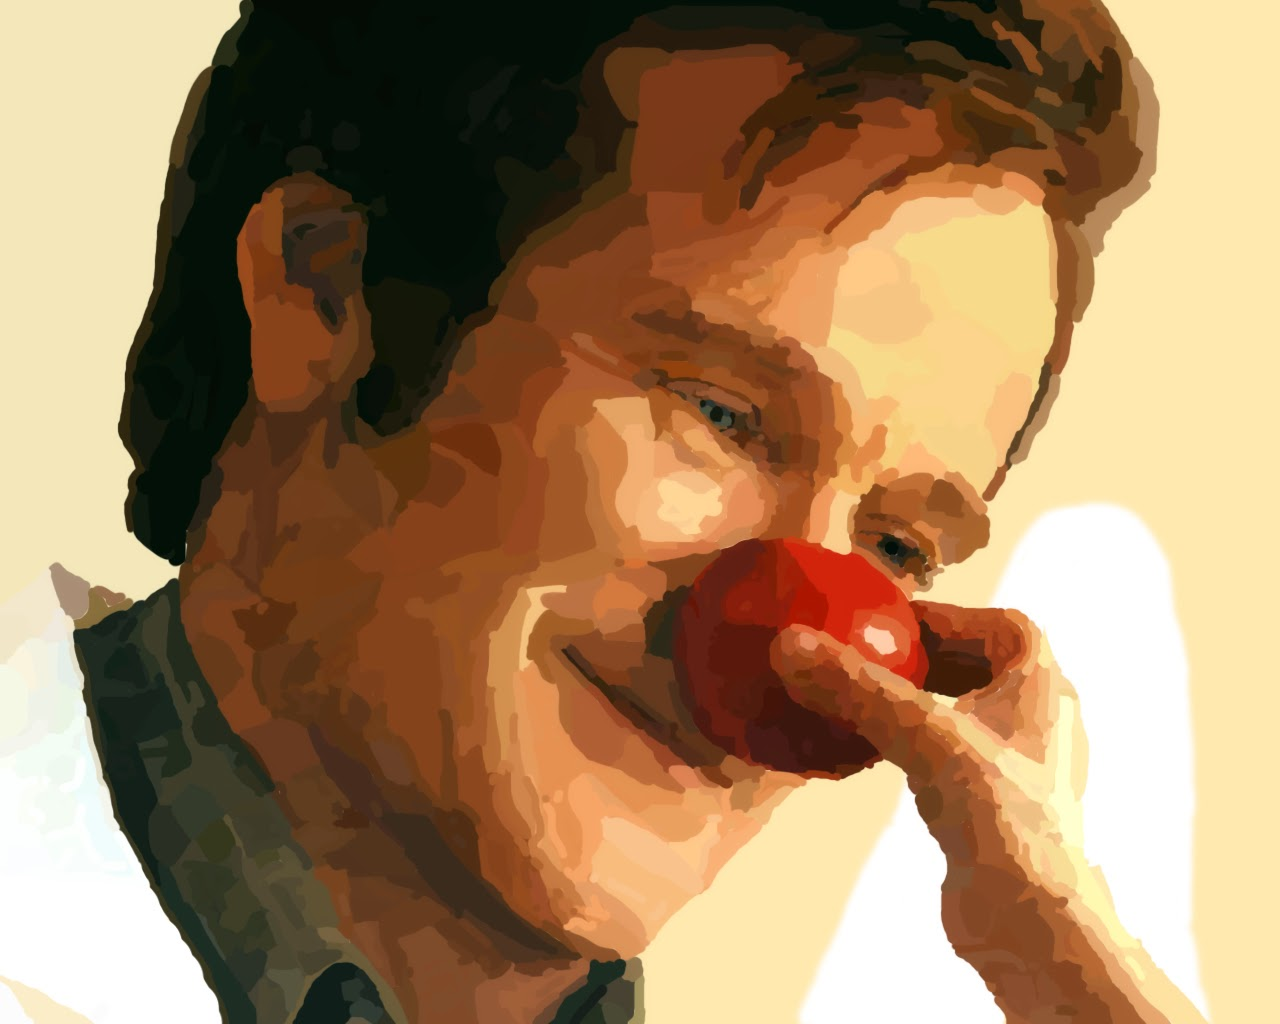 a review of the movie patch adams starring robin williams Patch adams - after the fiasco patch adams review by elias savada starring robin williams, daniel london, monica potter.